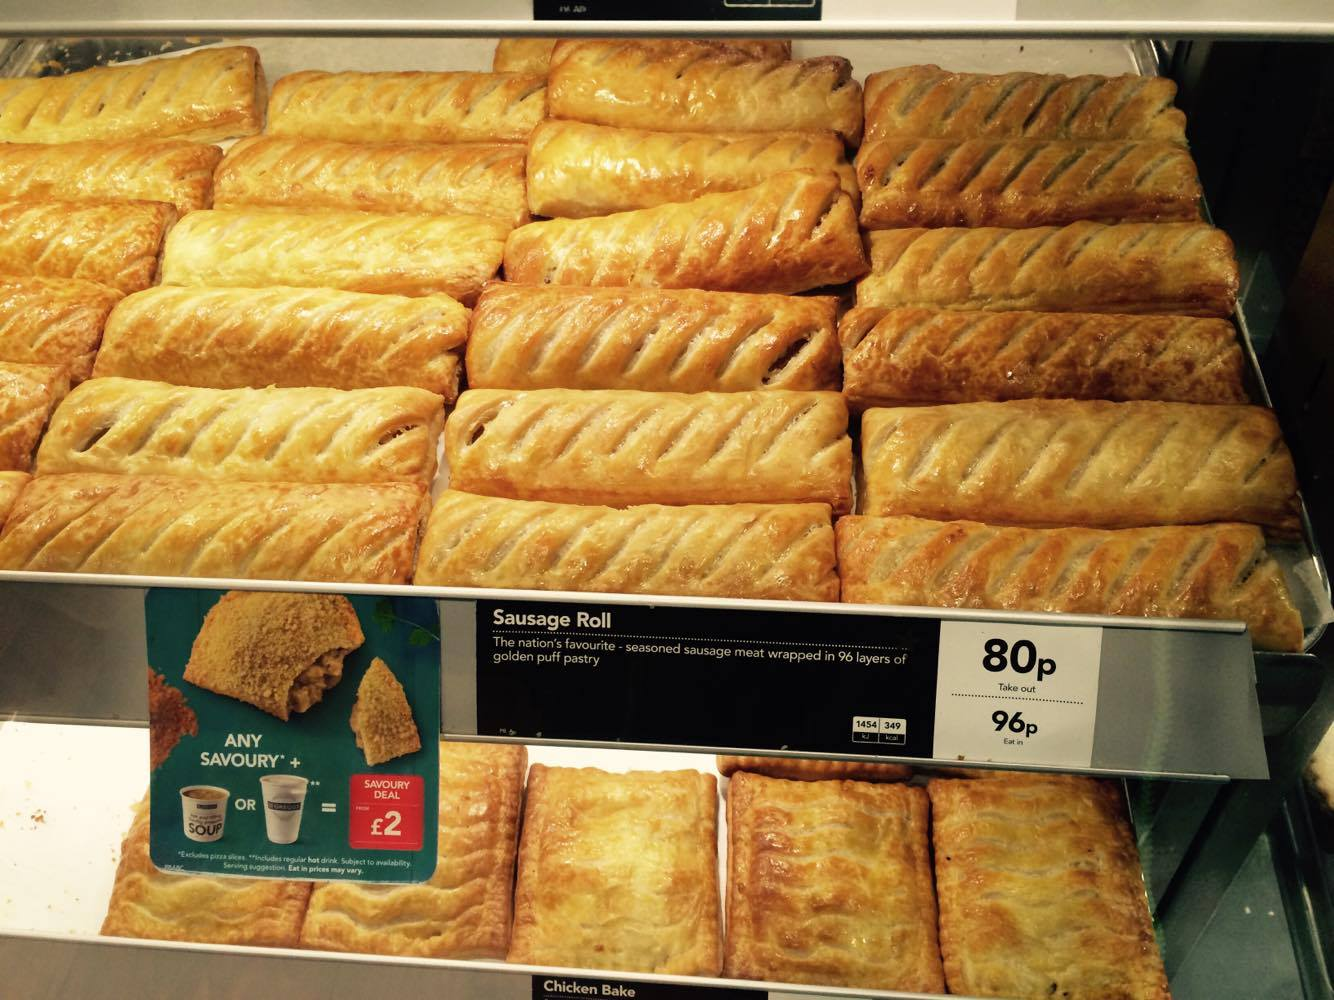 the largest bakery chain in the UK